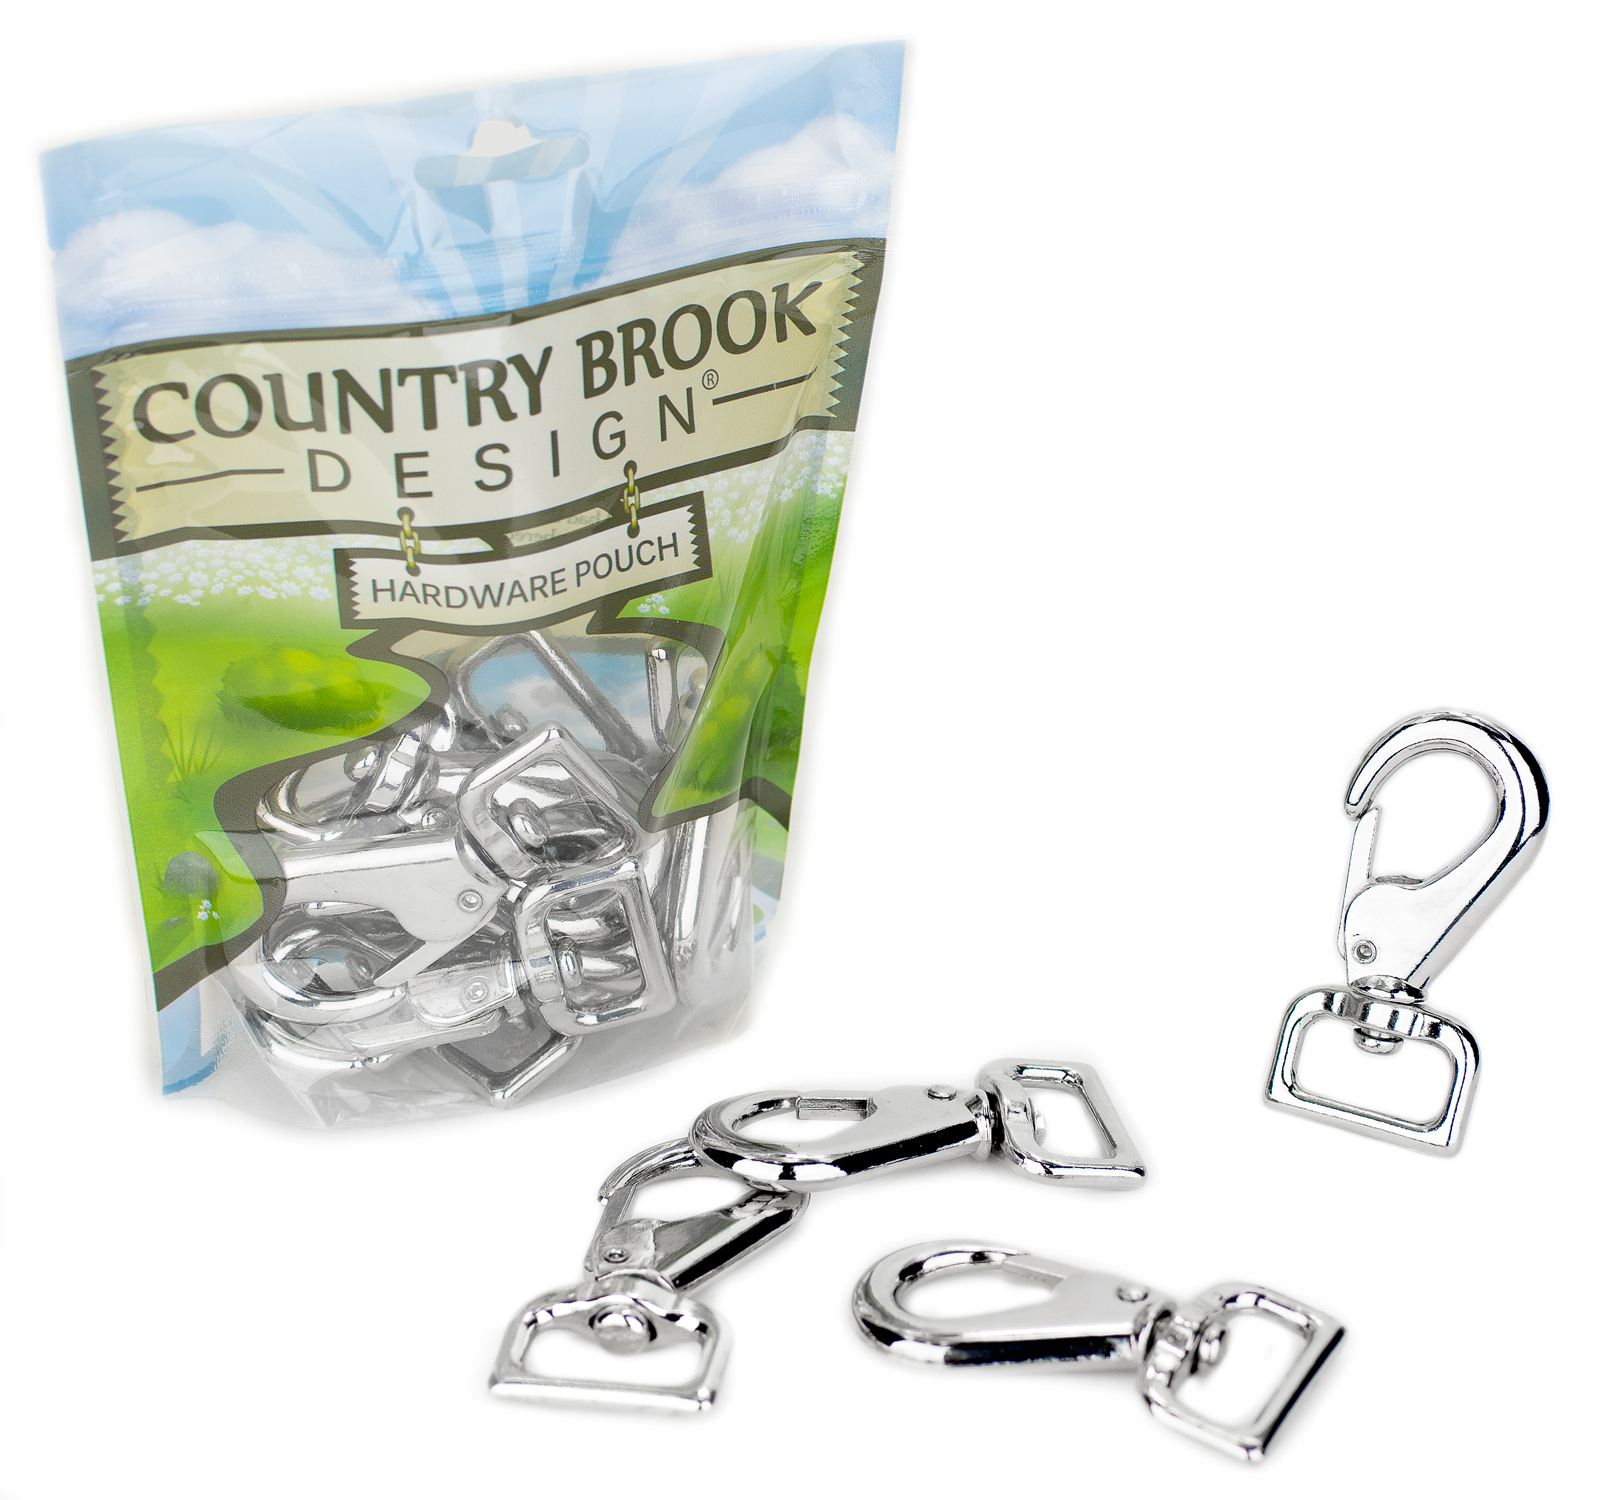 25 Country Brook Design® 1 Inch Nickel Plated S-Hooks